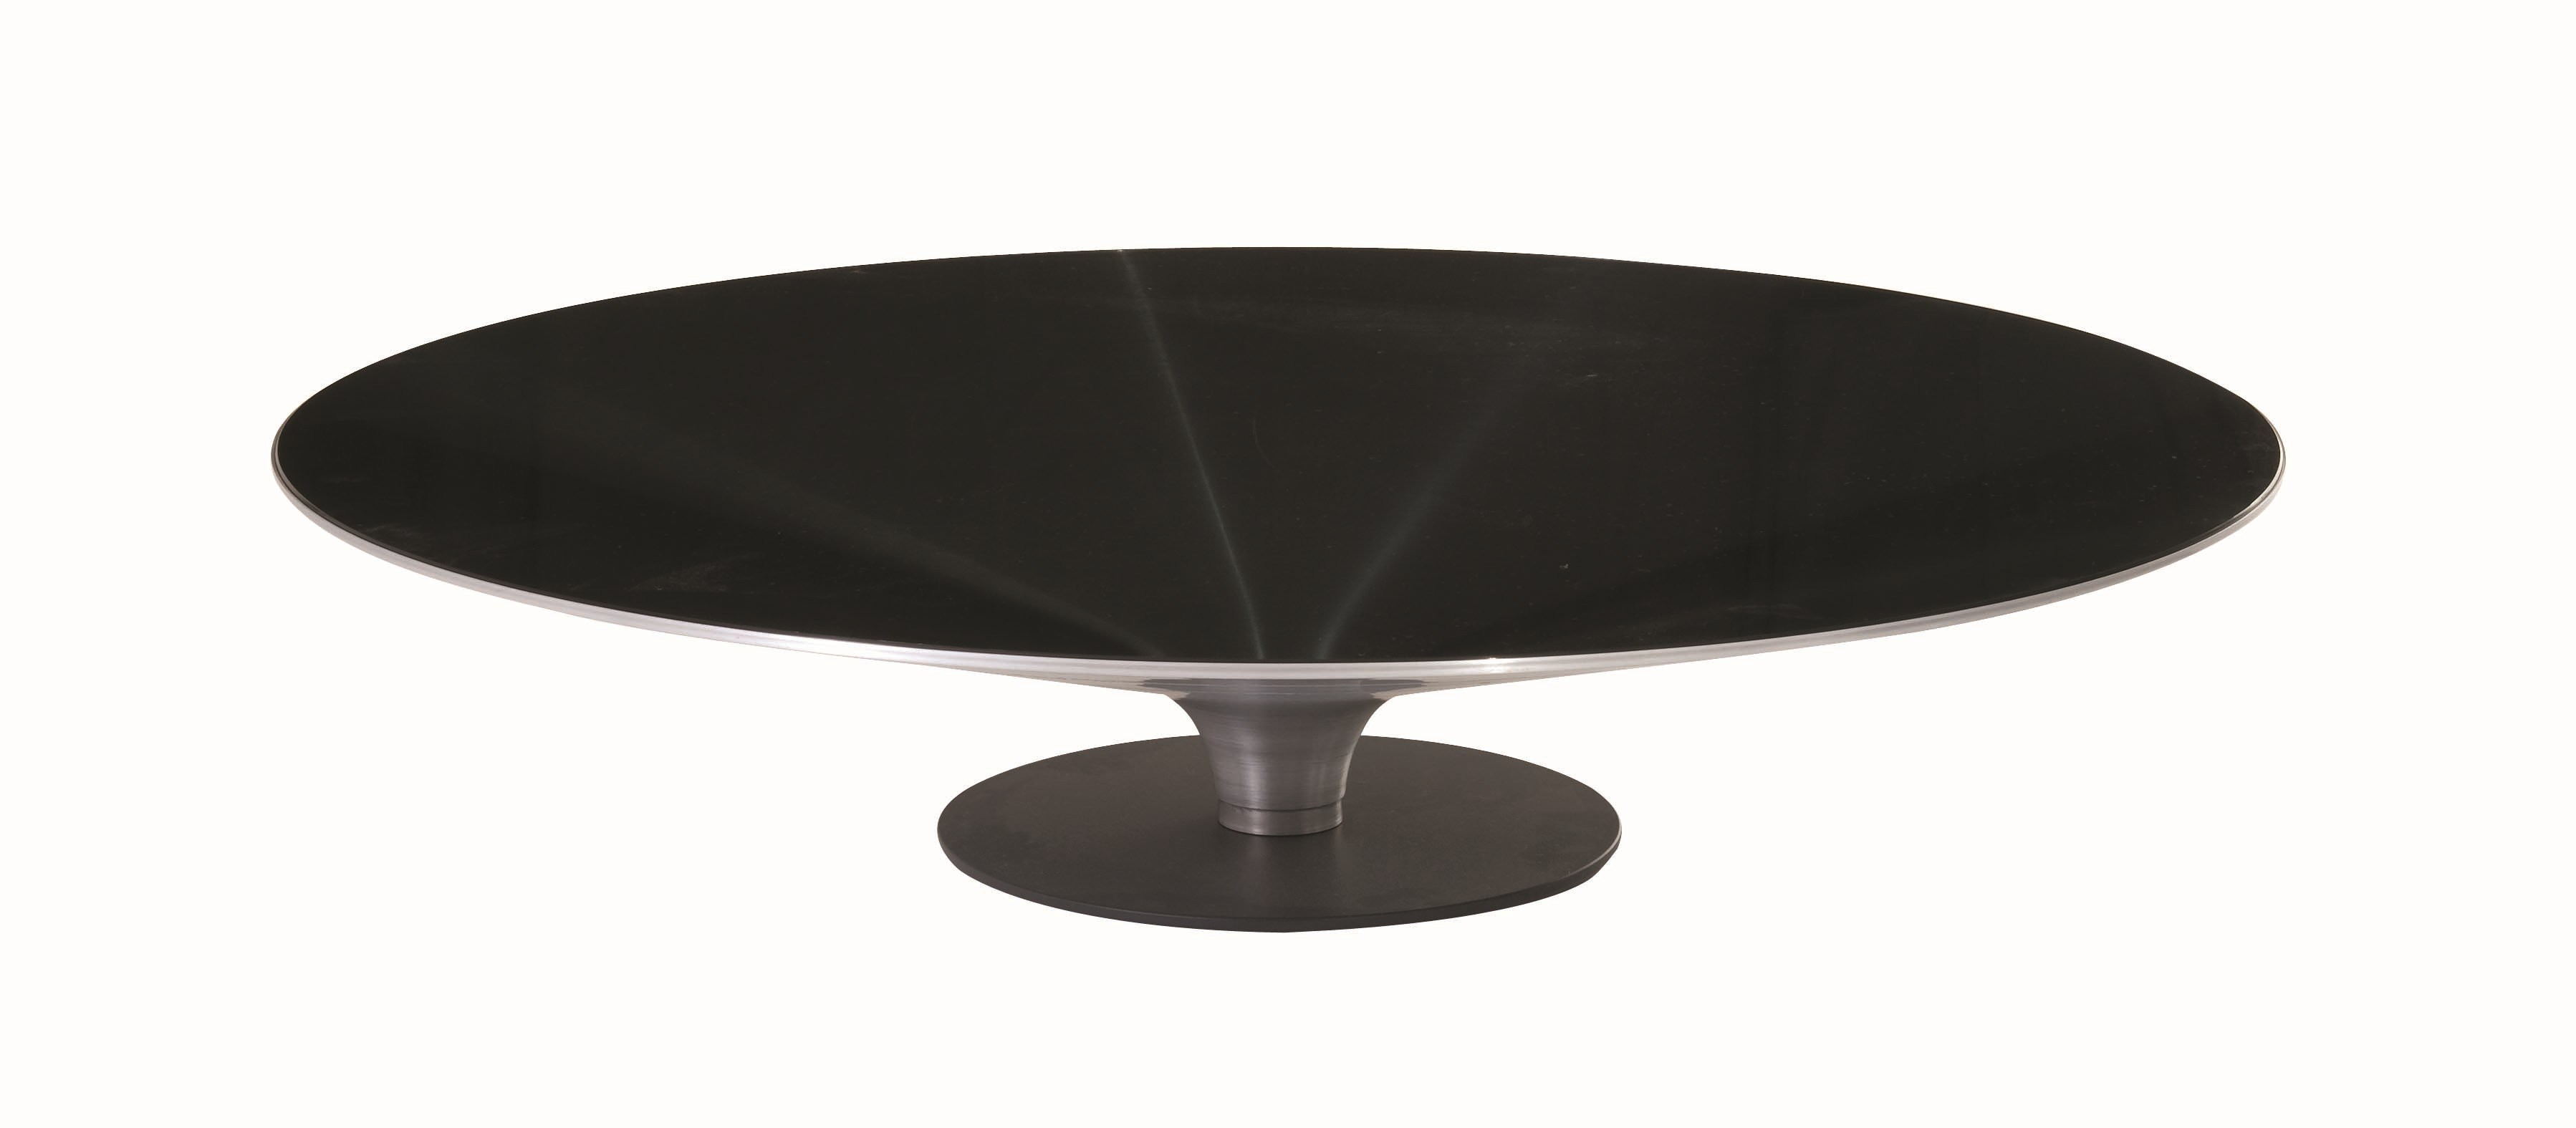 Table Basse Relevable Transformable ~   RUNDER COUCHTISCH OVNI KOLLEKTION LES CONTEMPORAINS BY ROCHE BOBOIS